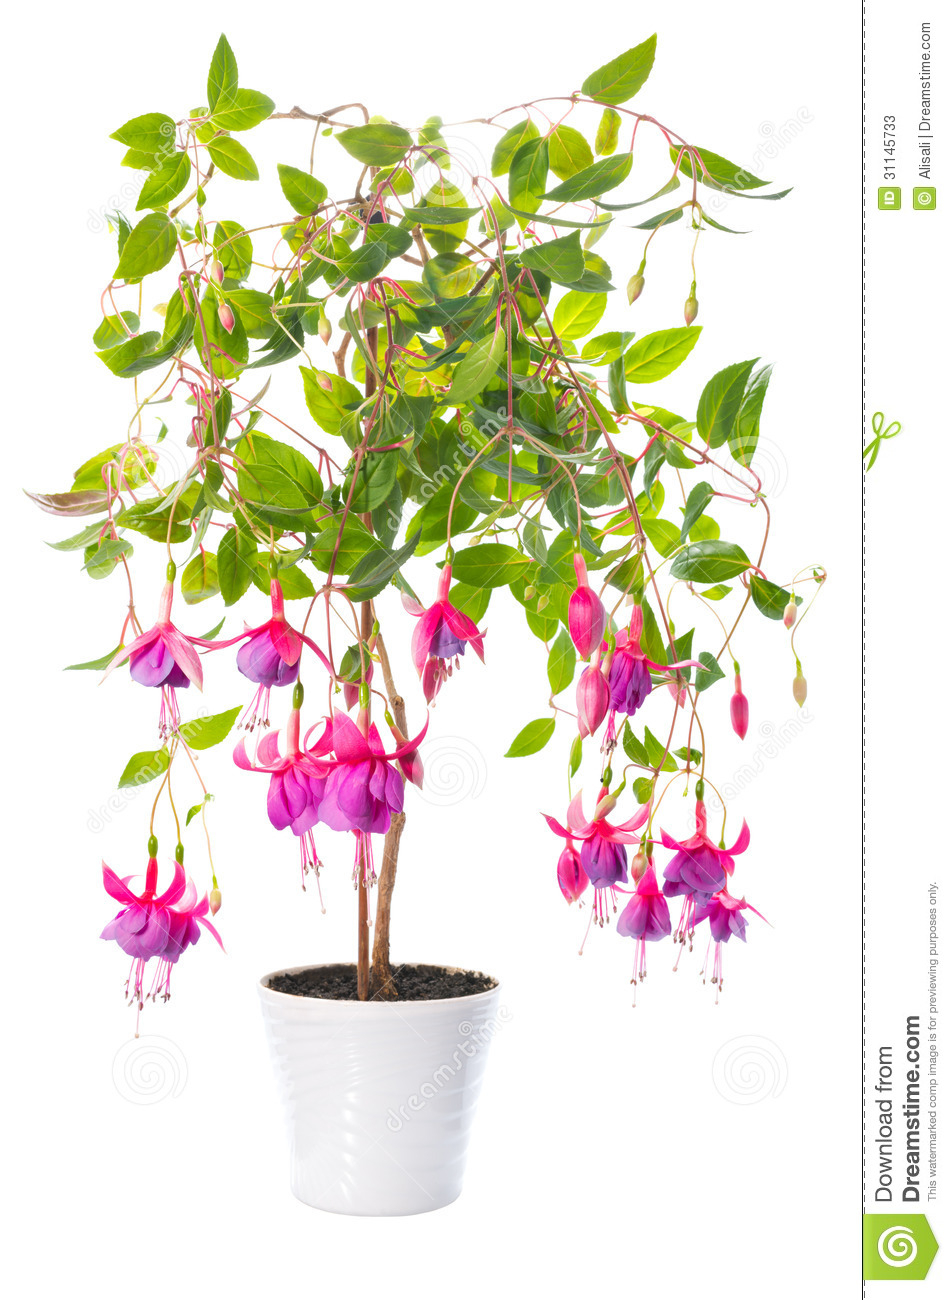 plantes d 39 int rieur fuchsia de fleur dans le pot de fleur tennessee walts photos stock image. Black Bedroom Furniture Sets. Home Design Ideas